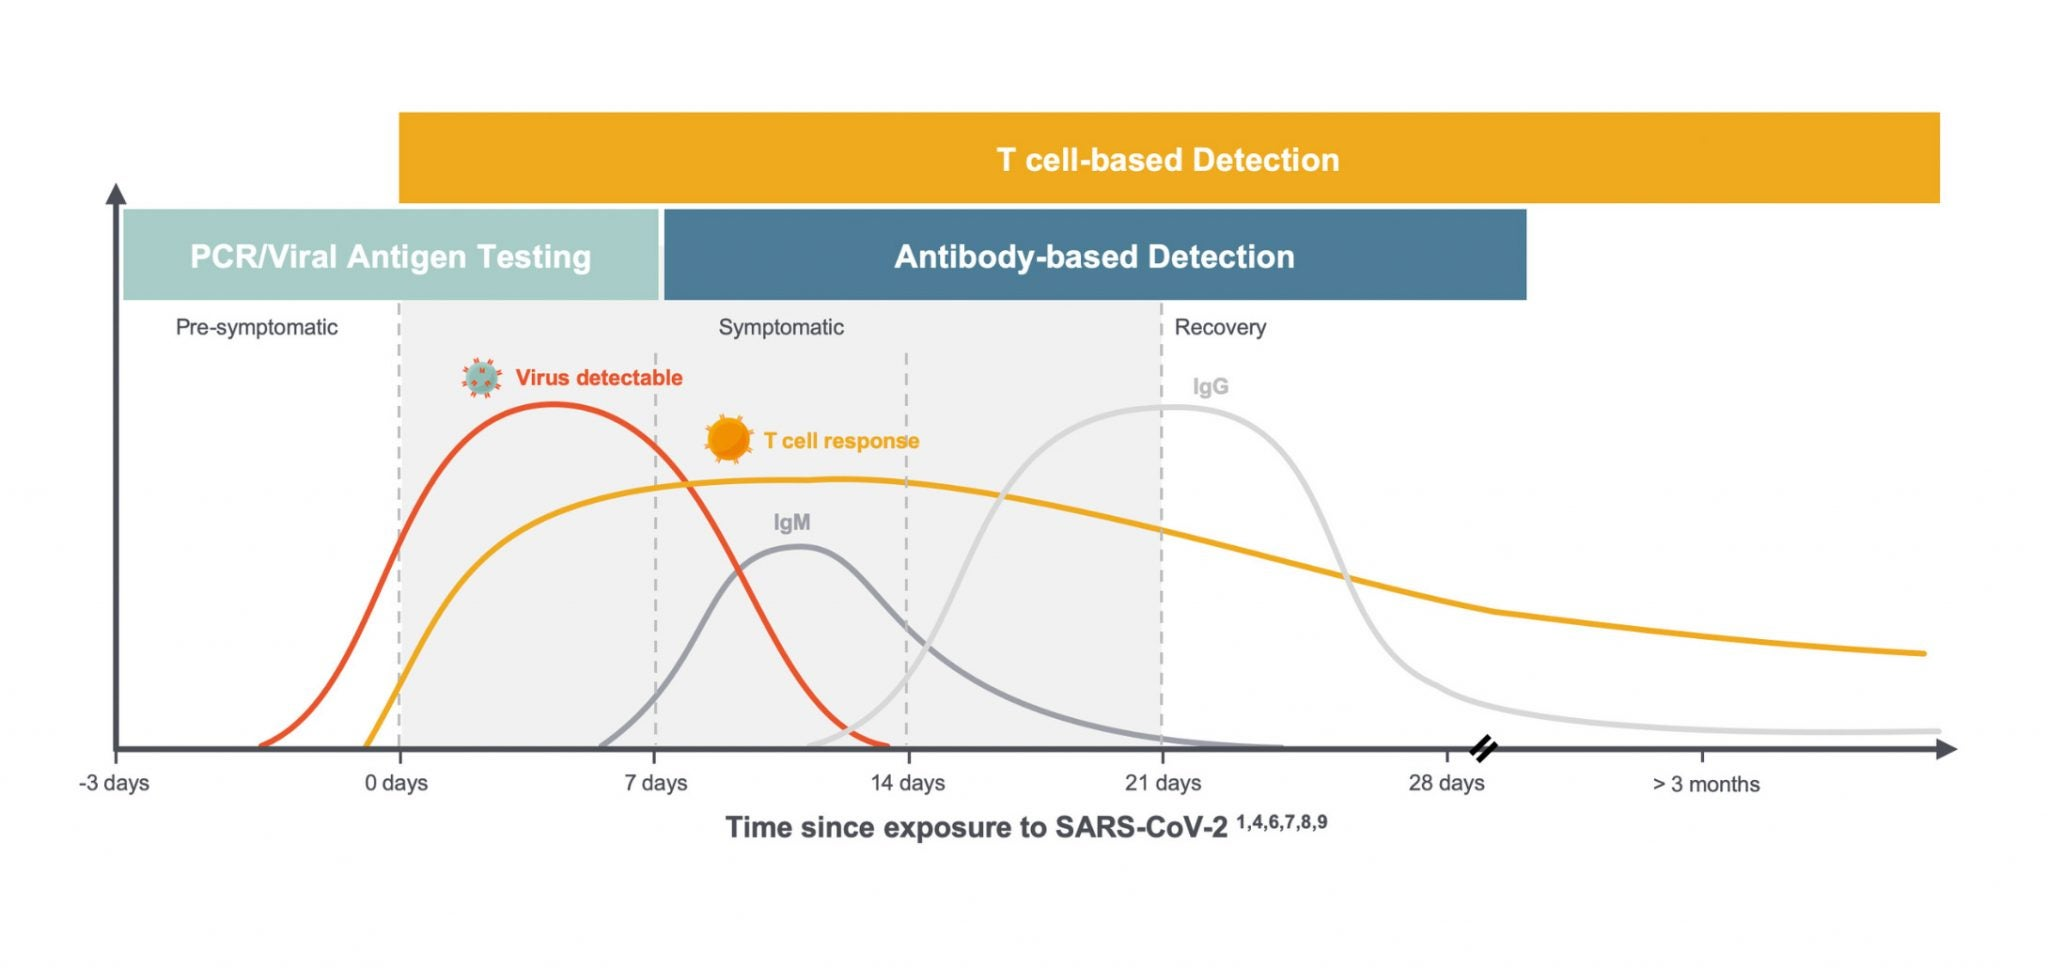 Graph showing antibody based detection versus T cell based detection